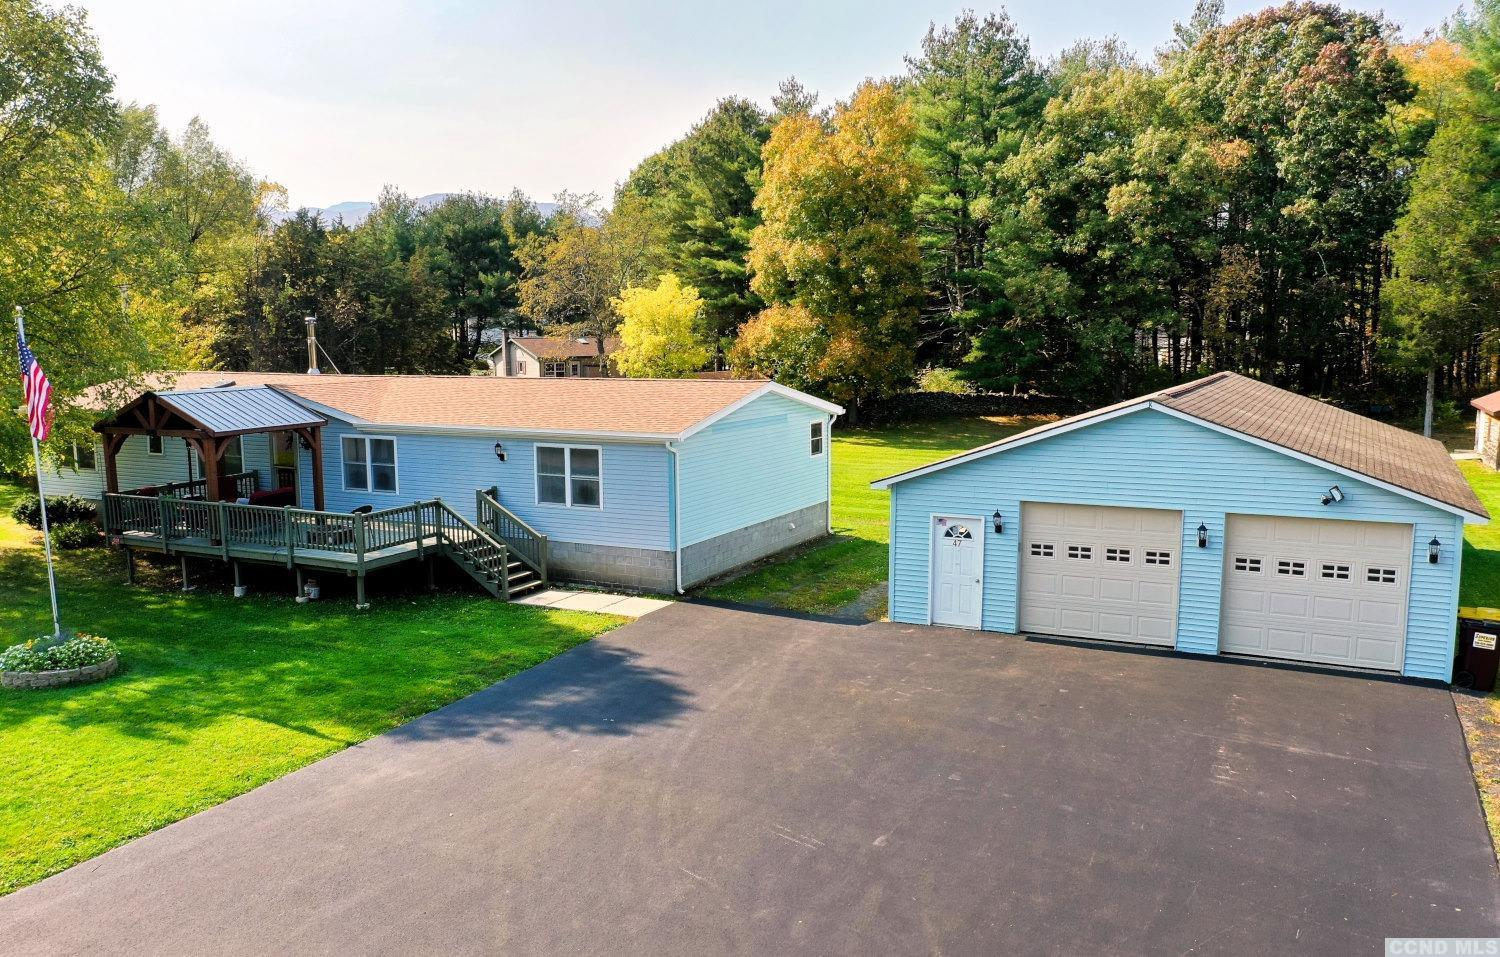 A Large 3 Bedroom, 2 Bath Ranch Home with an Oversized 2+ Car Garage with a 2nd Parcel of Land! The home features a master bedroom & bath suite, a large living room with a wood stove, a kitchen, a formal dining room, a den or office, a back screened porch, a front deck, a 2 to 4 car garage, a carport, a She shed for an office or writing cabin with heat, a paved driveway, and spacious yards. There are 2 parcels of land with this sale for a total of 1.83 acres. The adjacent corner lot has been excavated and tested. The 2nd lot can remain vacant or be built on. The home has been impeccably maintained. It's a Beautiful Home in a Beautiful Setting! View our 3D Virtual Tour of the home.